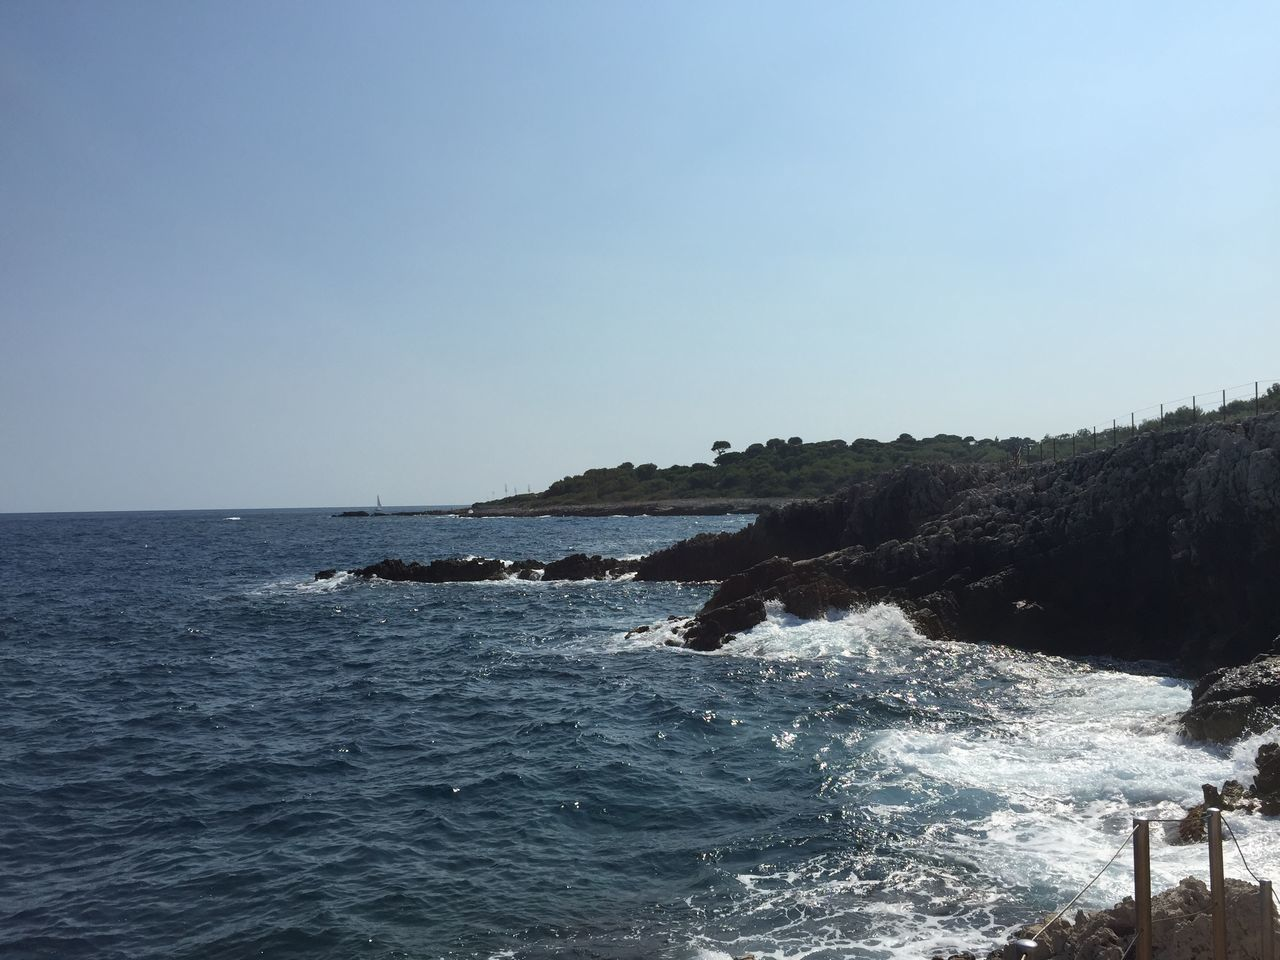 sea, water, clear sky, nature, beauty in nature, blue, scenics, no people, outdoors, waterfront, motion, horizon over water, wave, day, sky